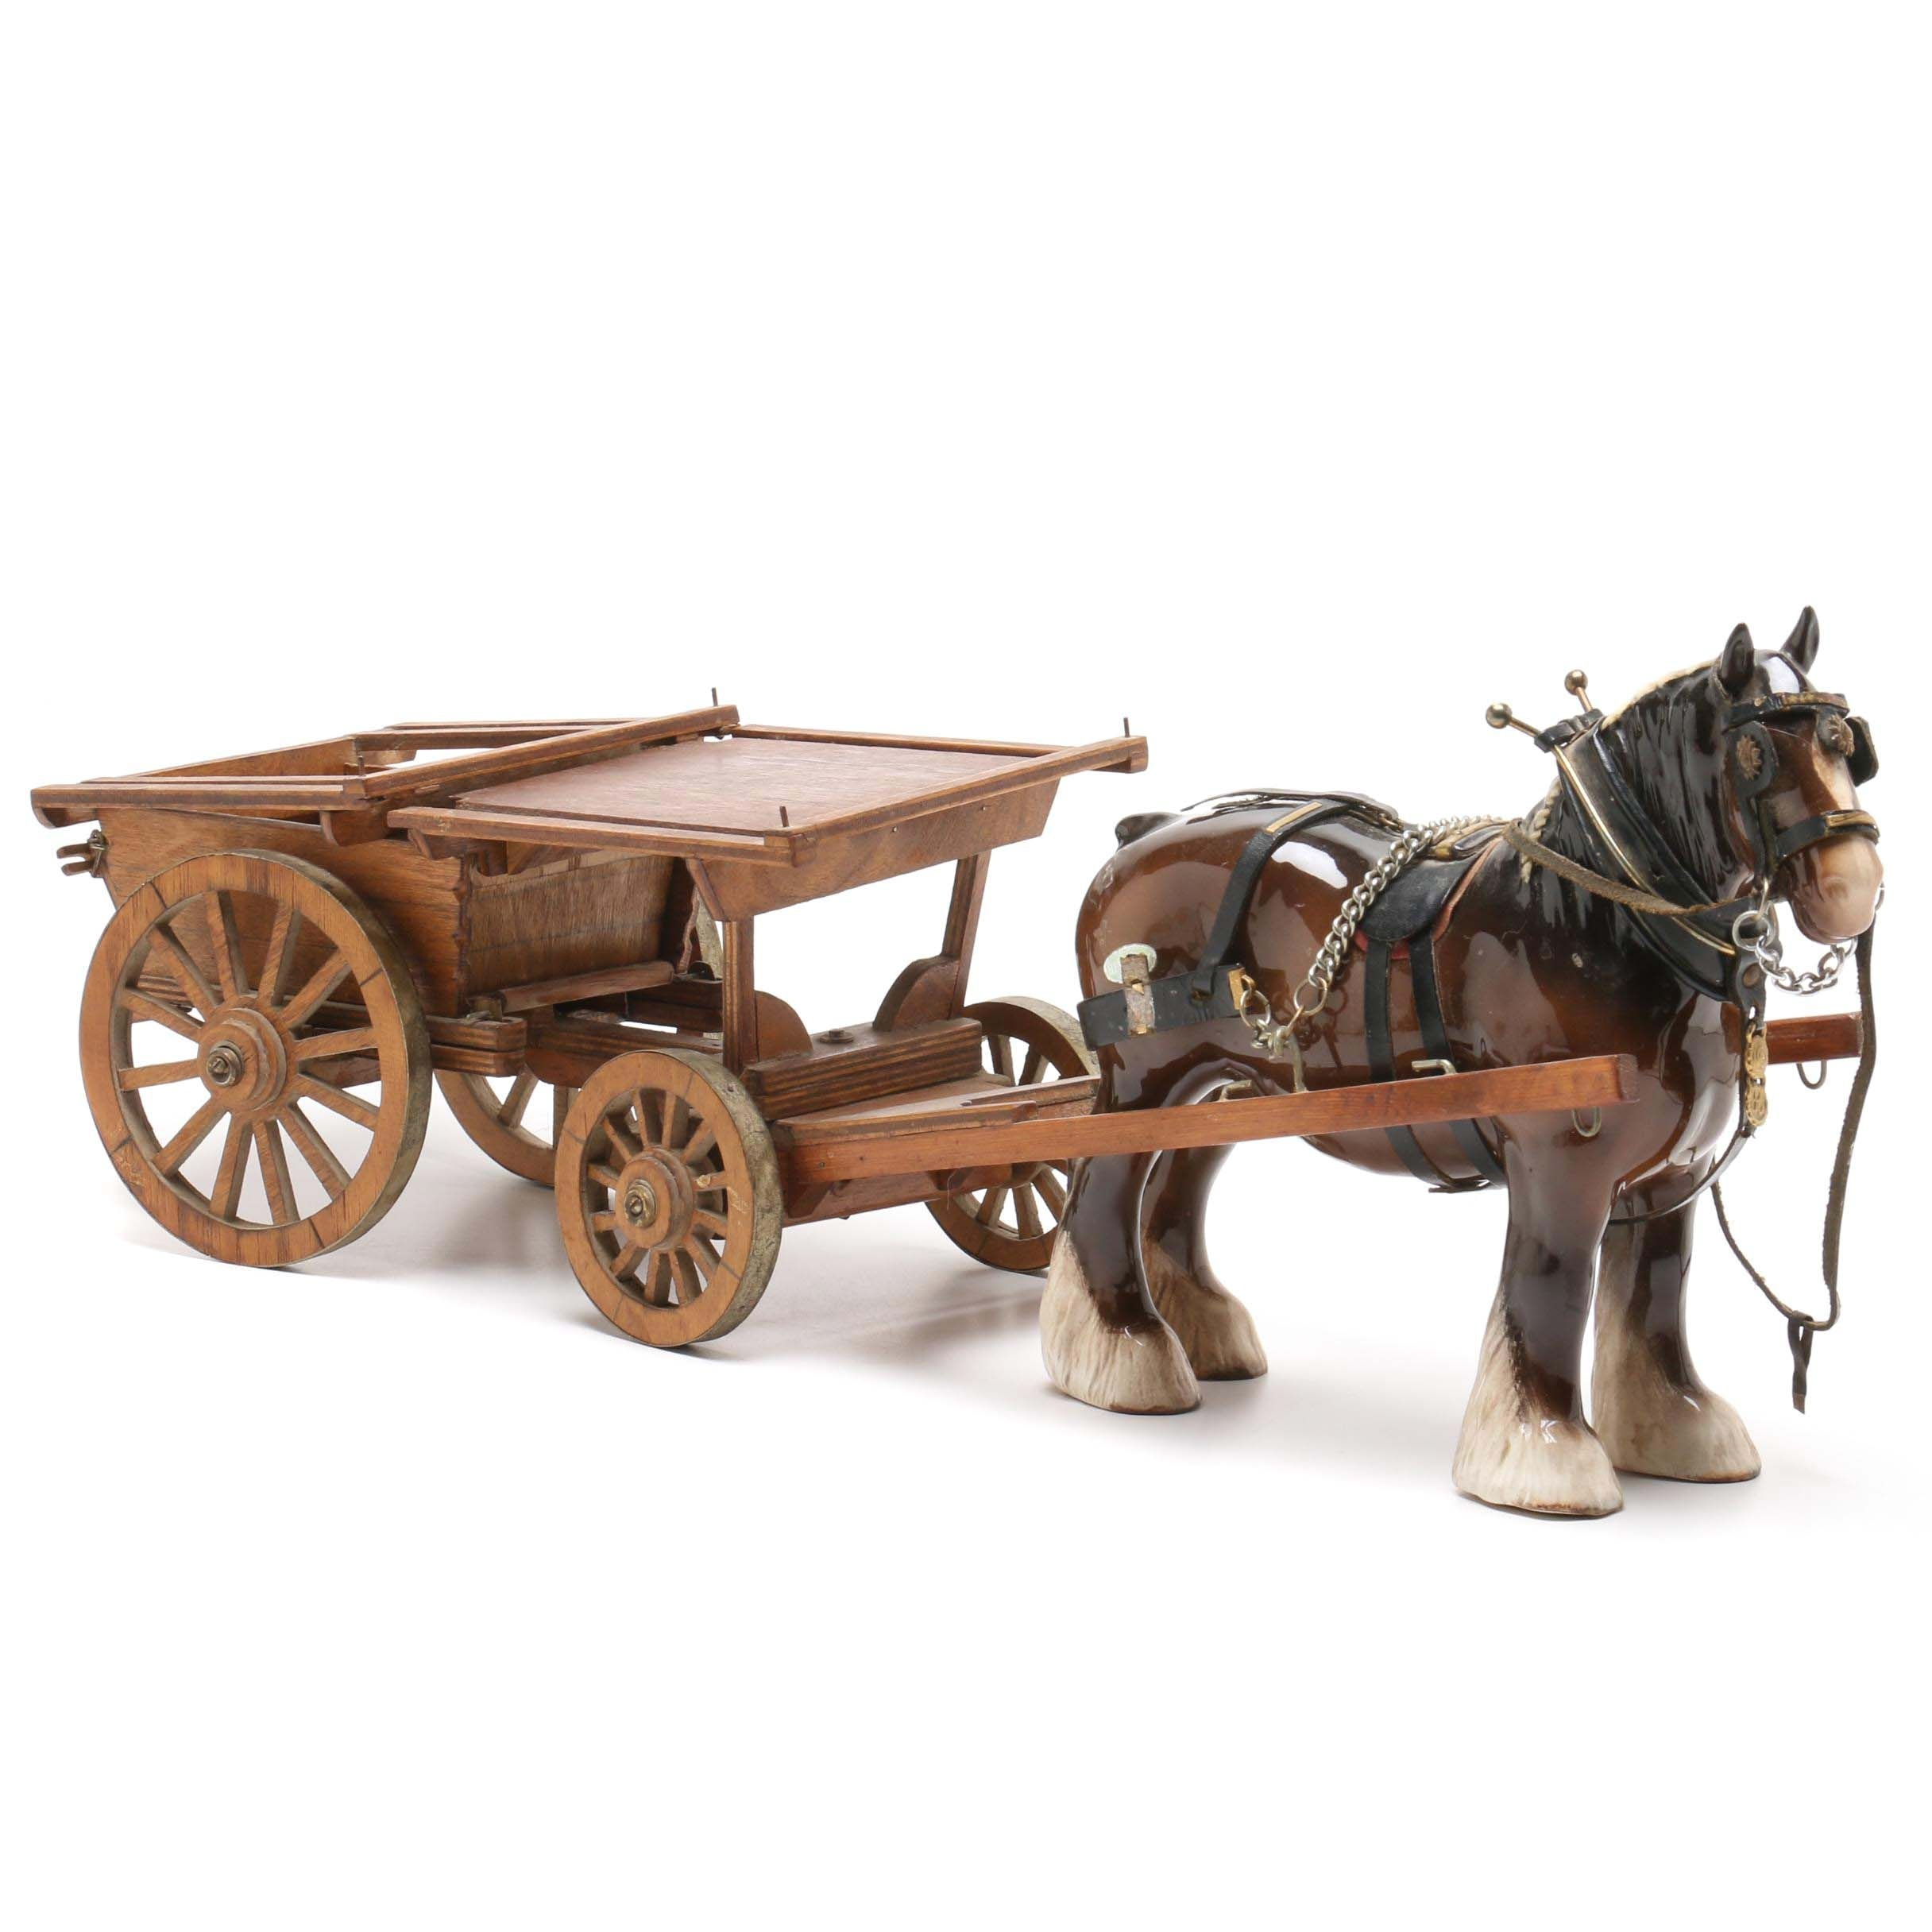 Beswick Porcelain Clydesdale with Wooden Wagon Figurine, Mid-Century